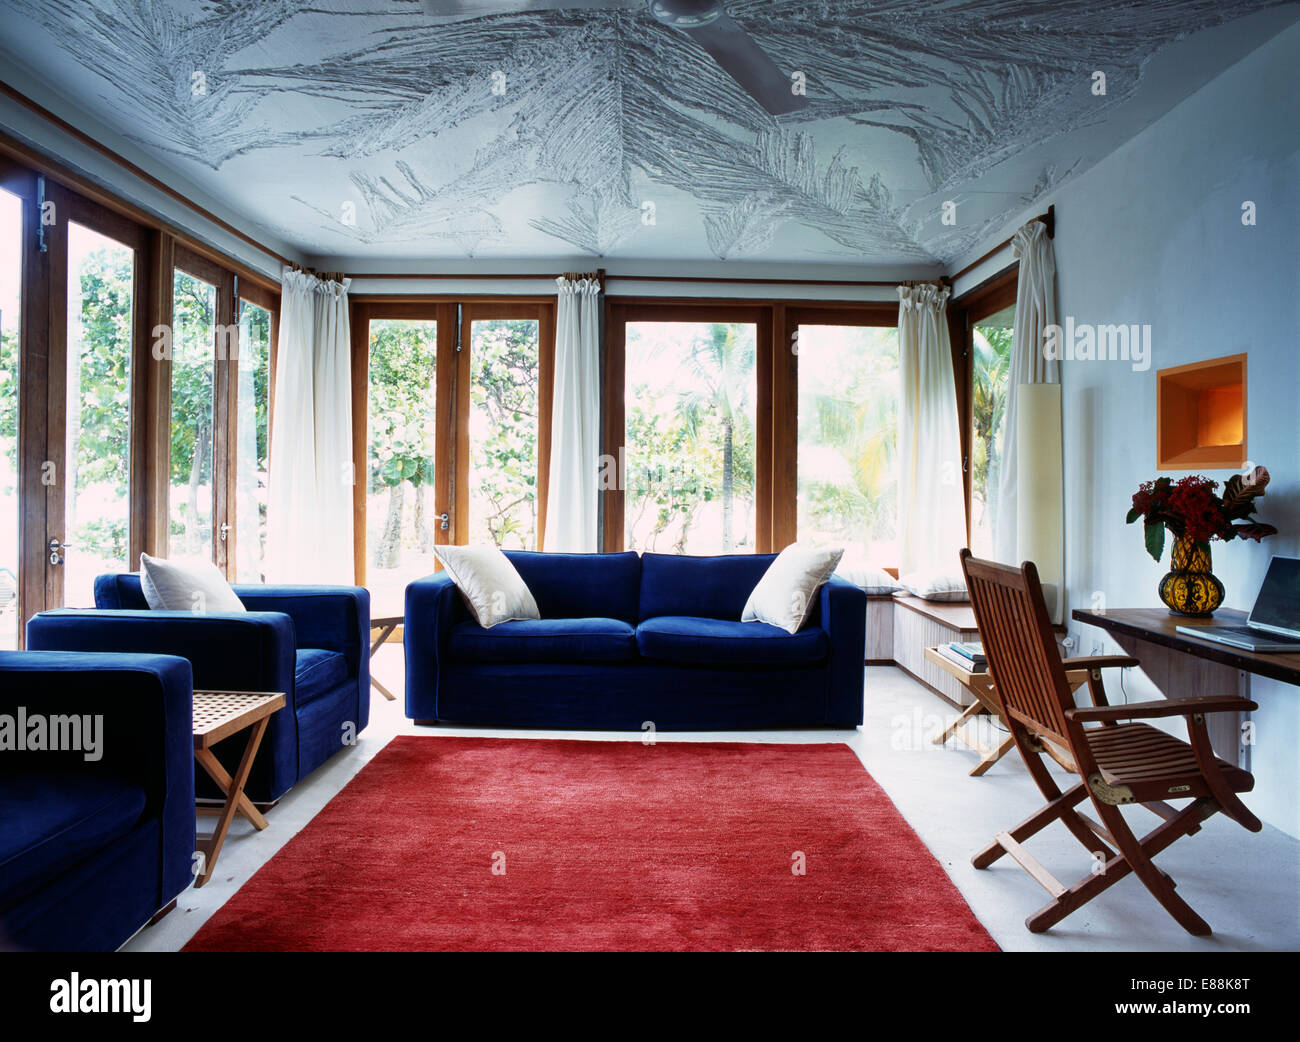 Blue Sofas And Large Red Rug In Modern White Caribbean Living Room With Textured Ceiling